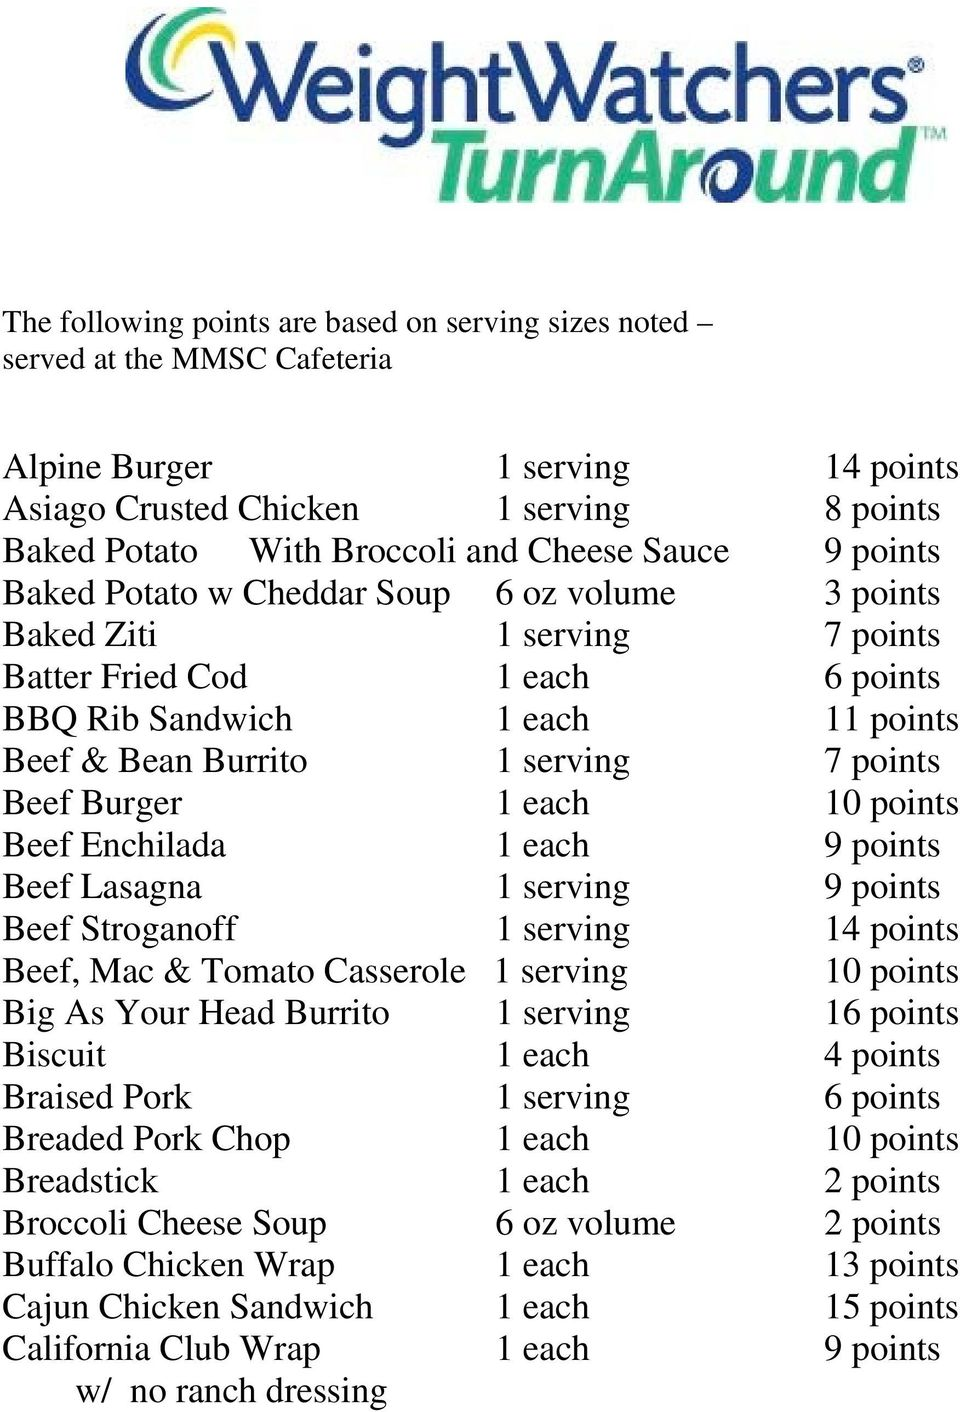 Beef Burger 1 each 10 points Beef Enchilada 1 each 9 points Beef Lasagna 1 serving 9 points Beef Stroganoff 1 serving 14 points Beef, Mac & Tomato Casserole 1 serving 10 points Big As Your Head